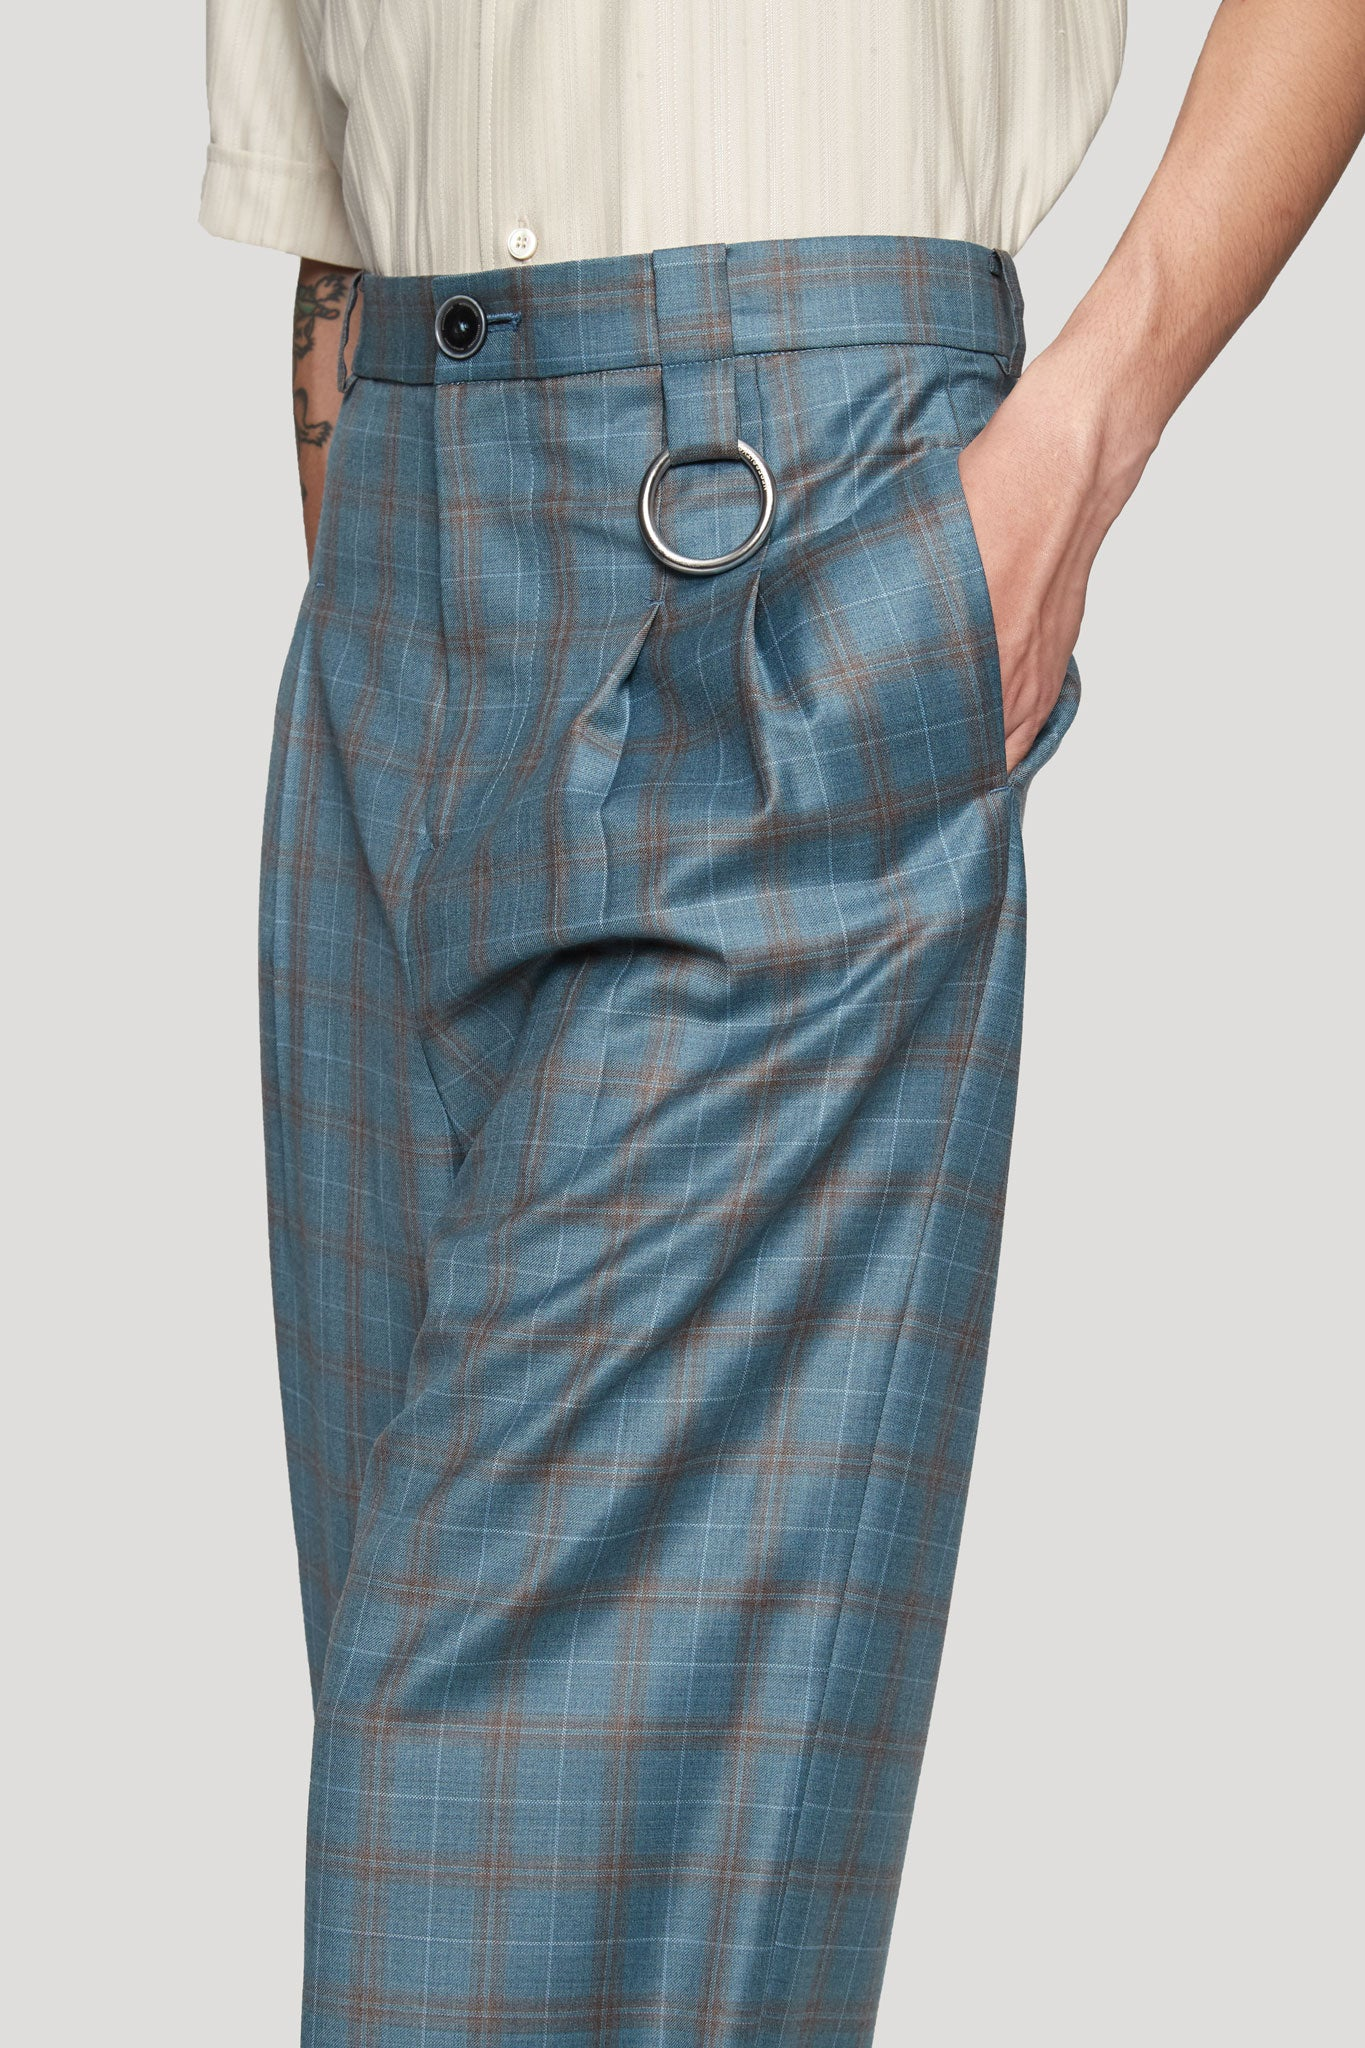 Dobby Pleats Wide Trouser Oil Stain Ocean Plaid